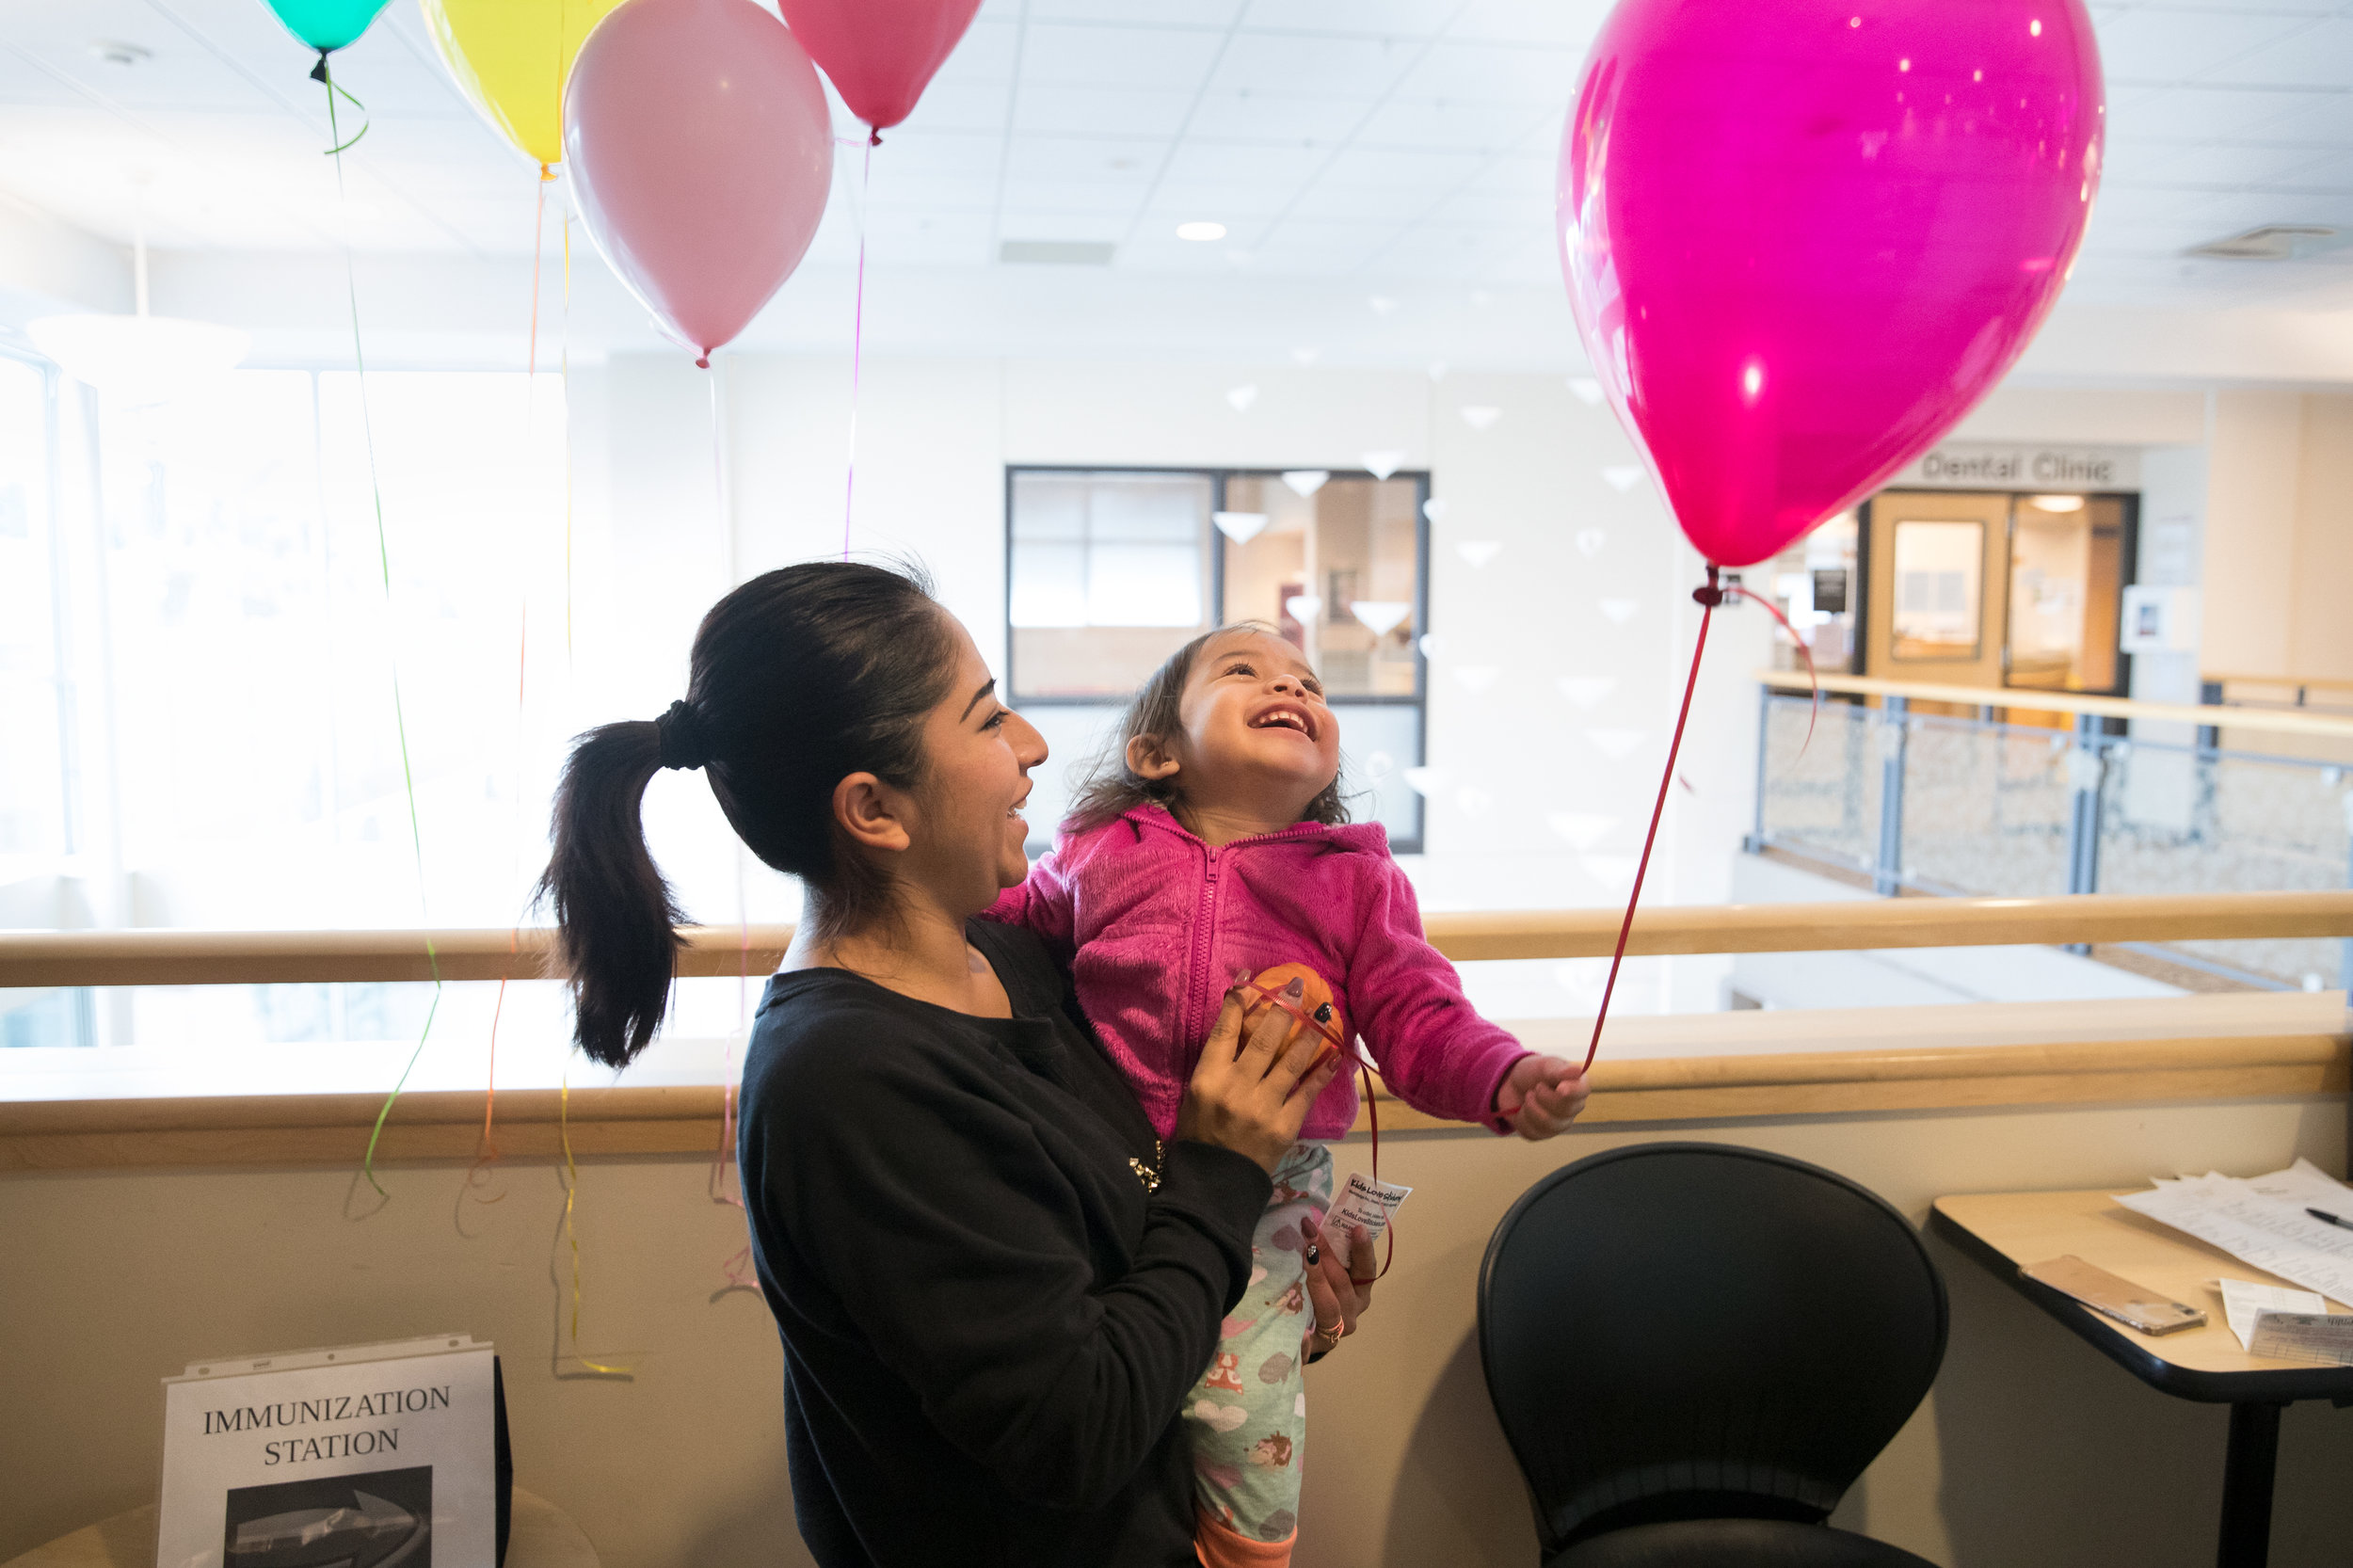 A balloon helps cheer up a child who just received a vaccine at the East County Health Center in Gresham, Ore.